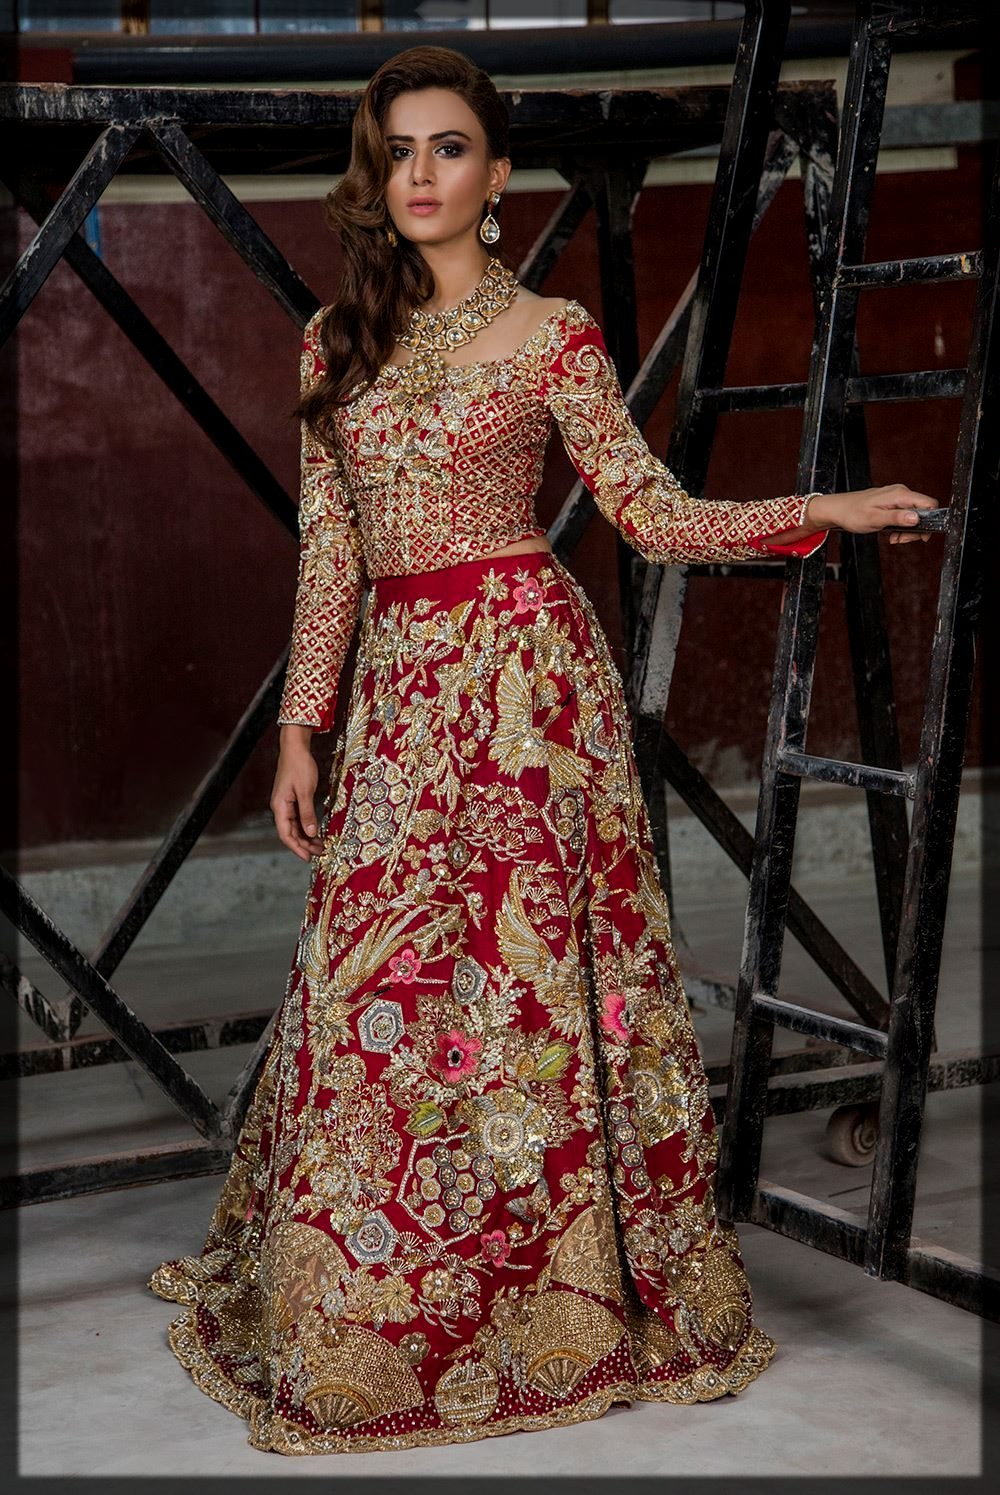 Classy Red Lehenga Choli with Impeccable Detailing